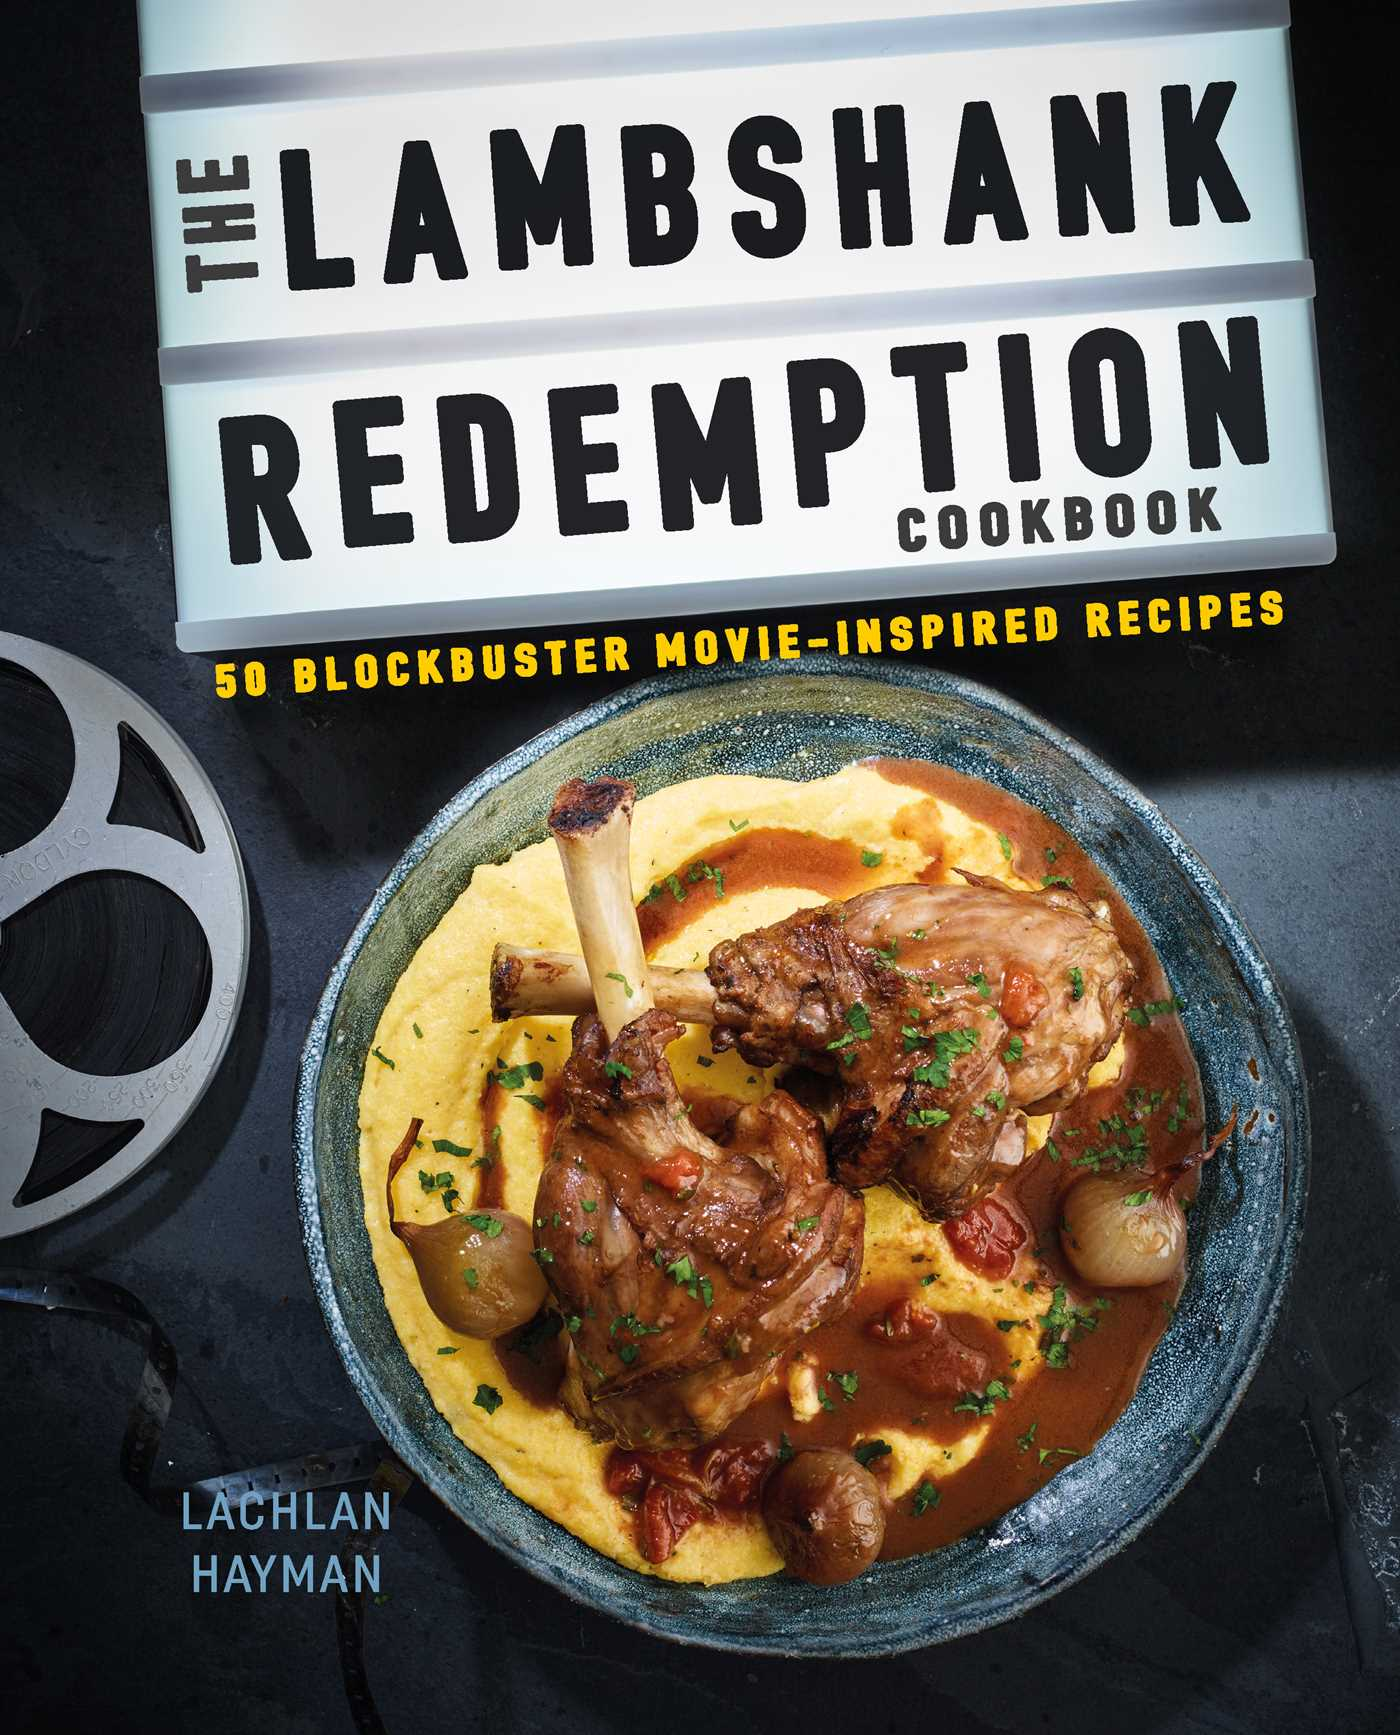 The lambshank redemption cookbook 9781911026280 hr